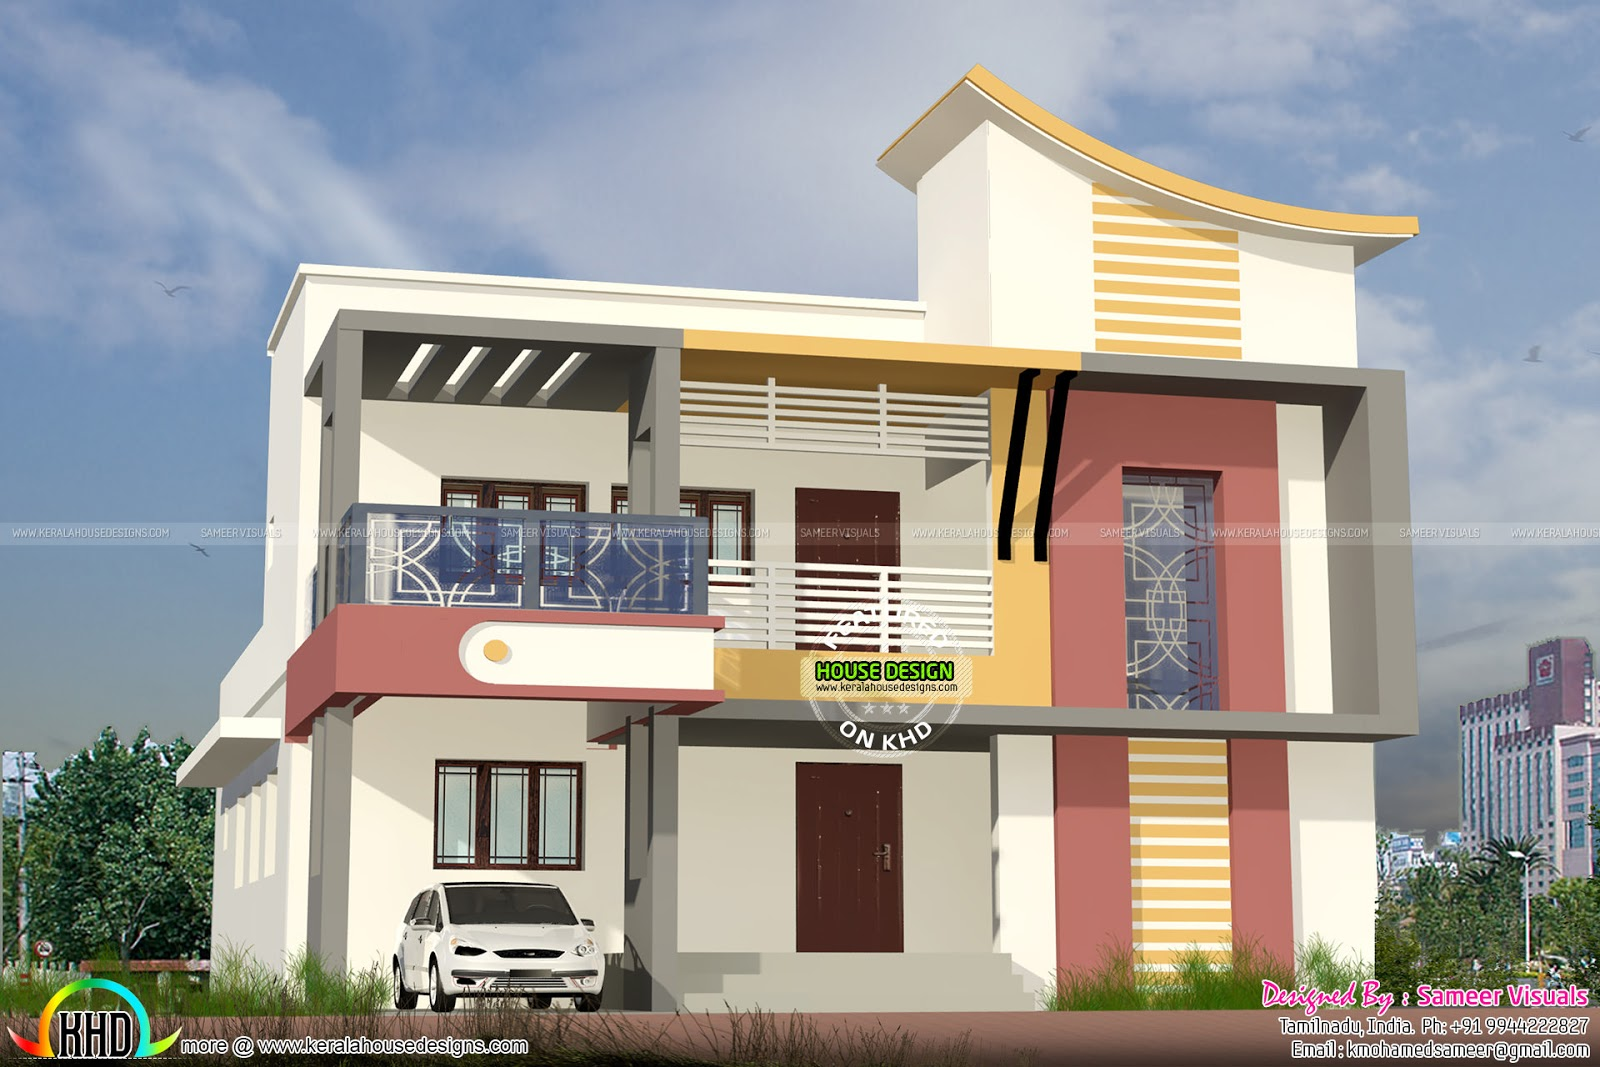 tamilnadu house models modern minimalist home designhome design tamilnadu homeriviewtamilnadu model home